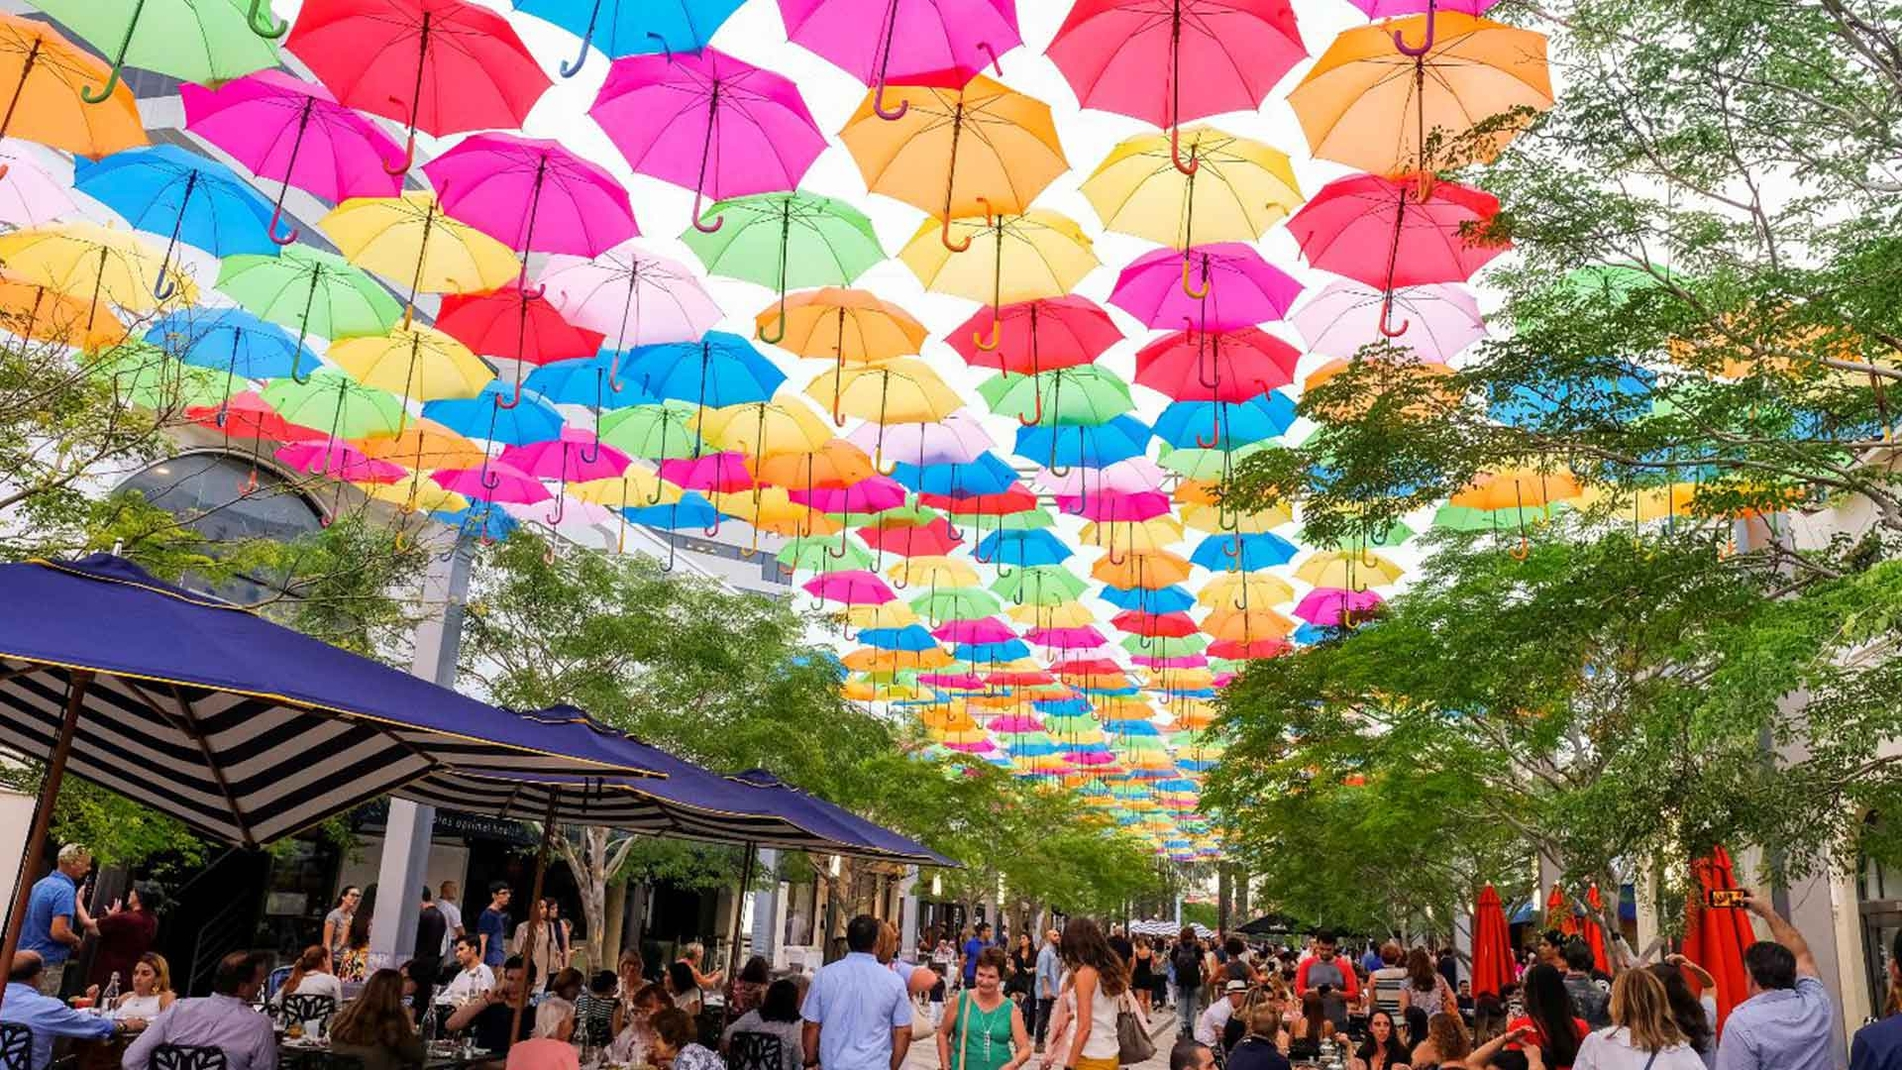 Umbrella art installation adds colorful explosion to Giralda Plaza in Coral Gables